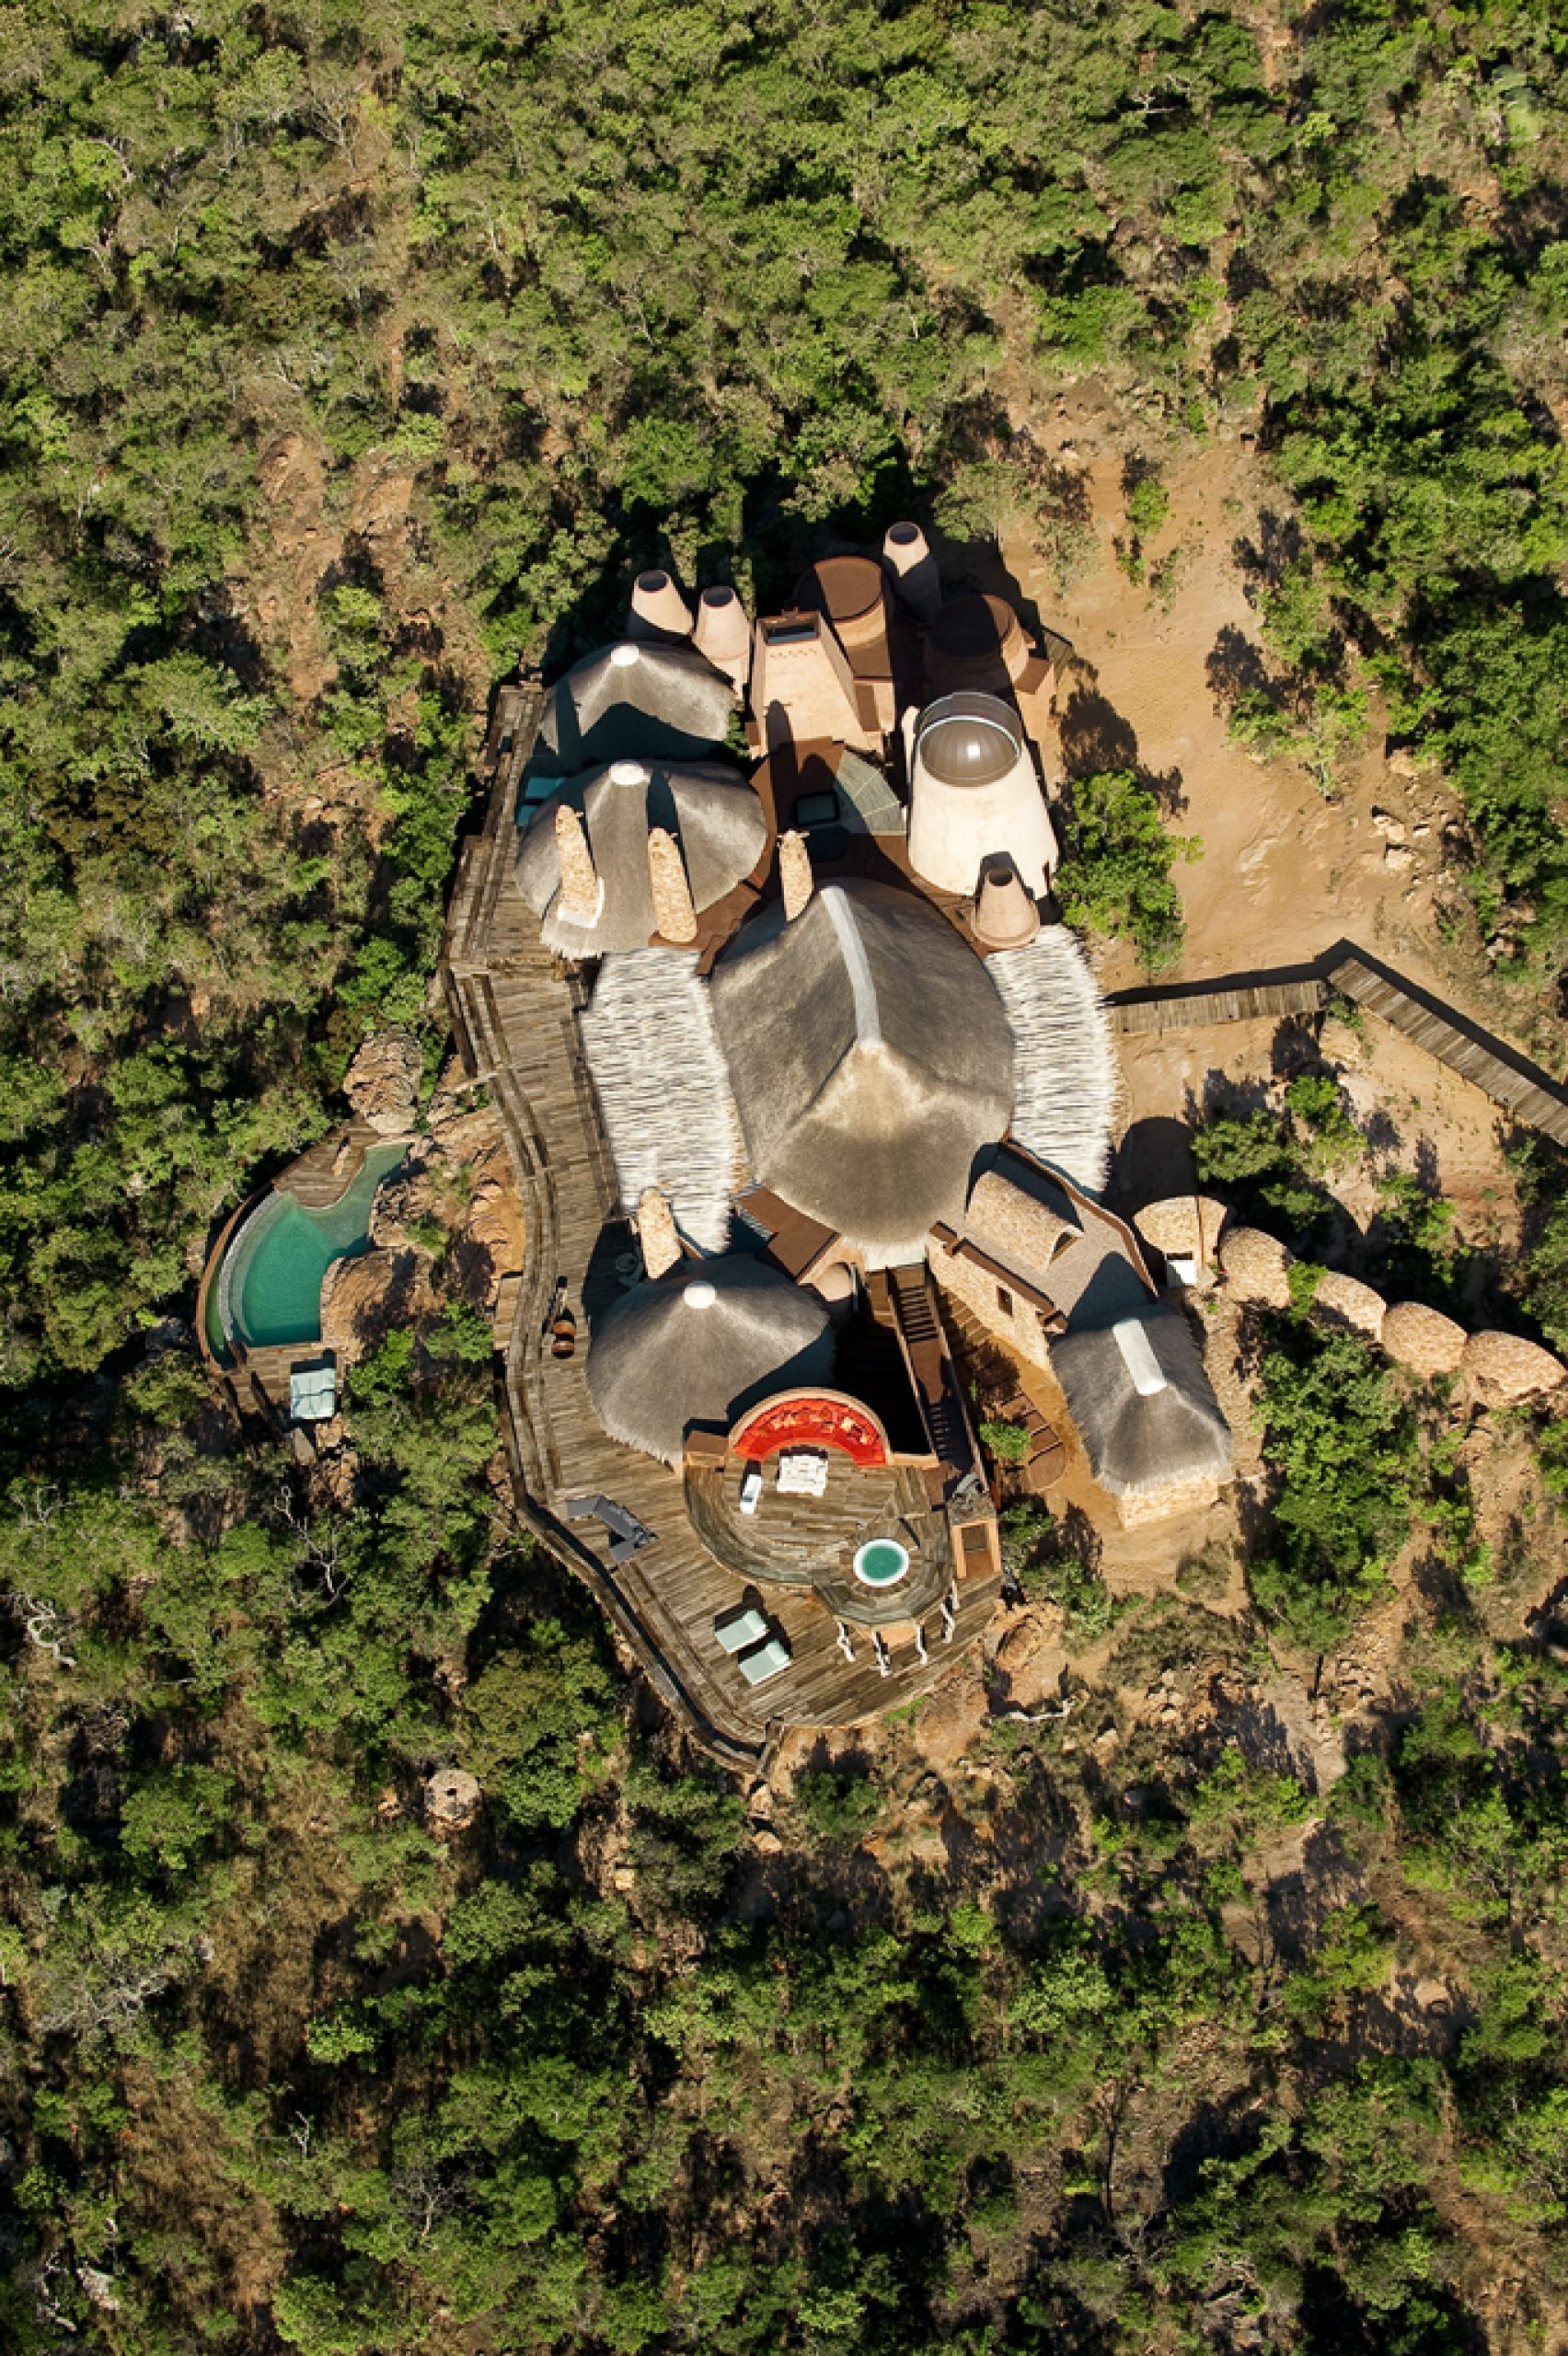 leobo private villa africa safari luxury hotel